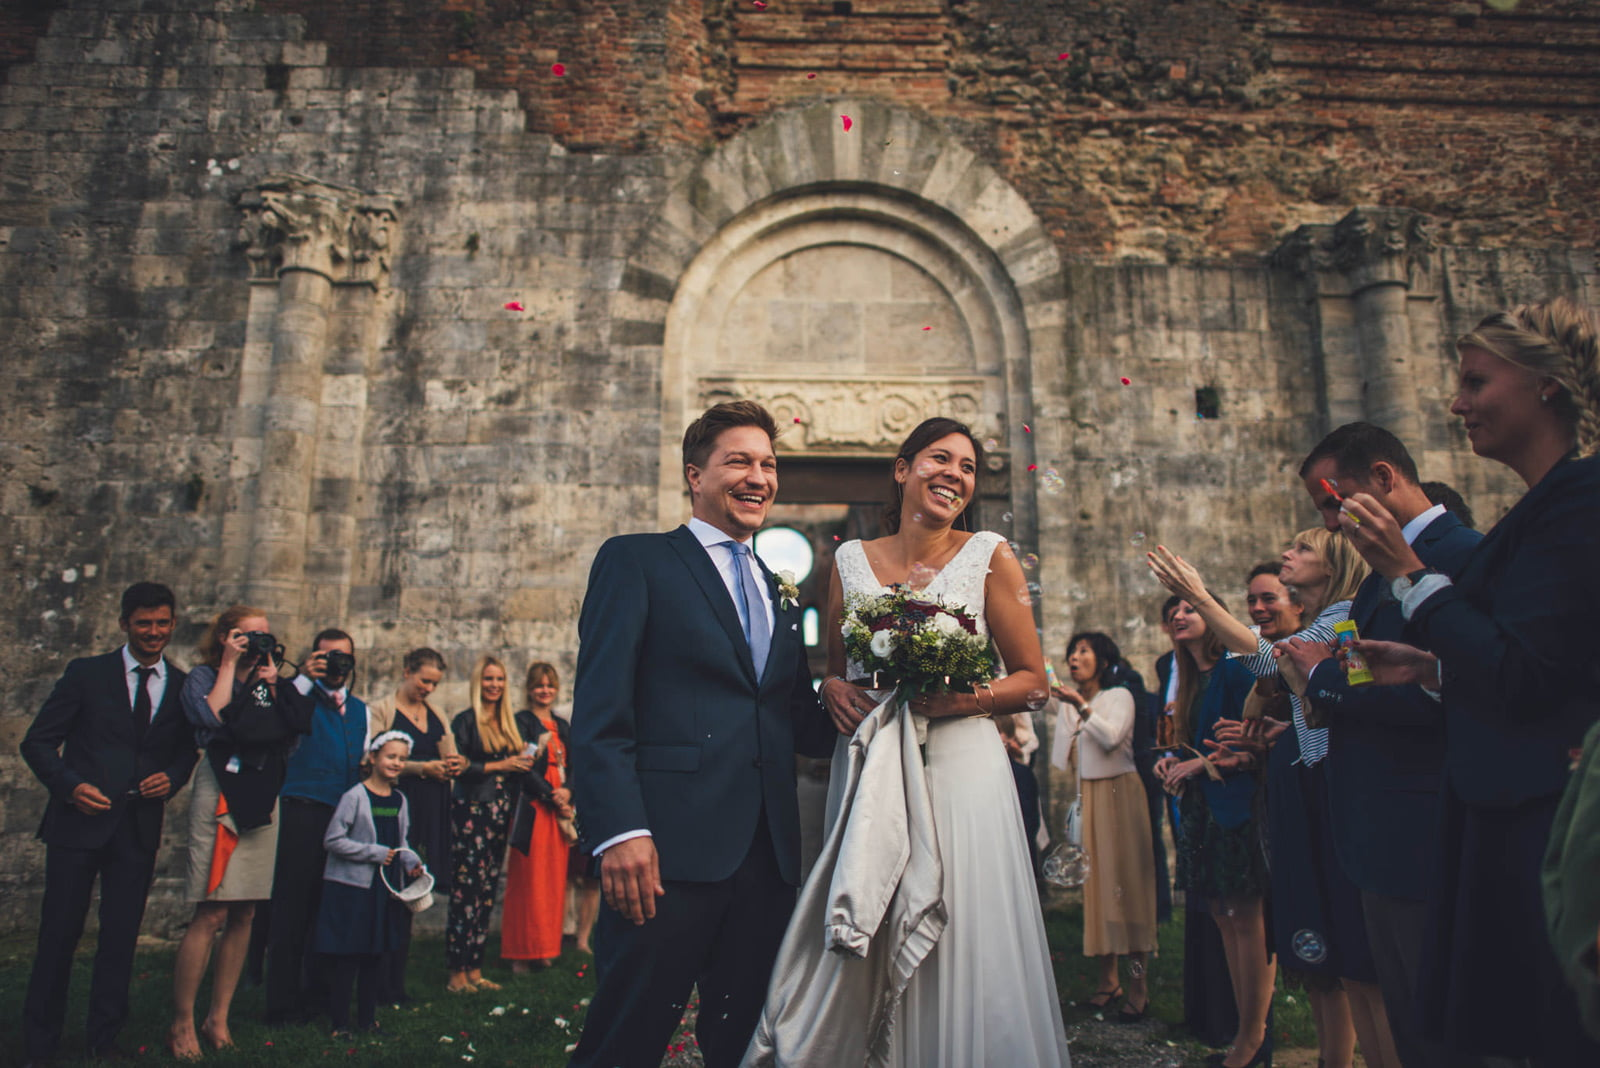 062-wedding-tuscany-san-galgano-siena-photographer